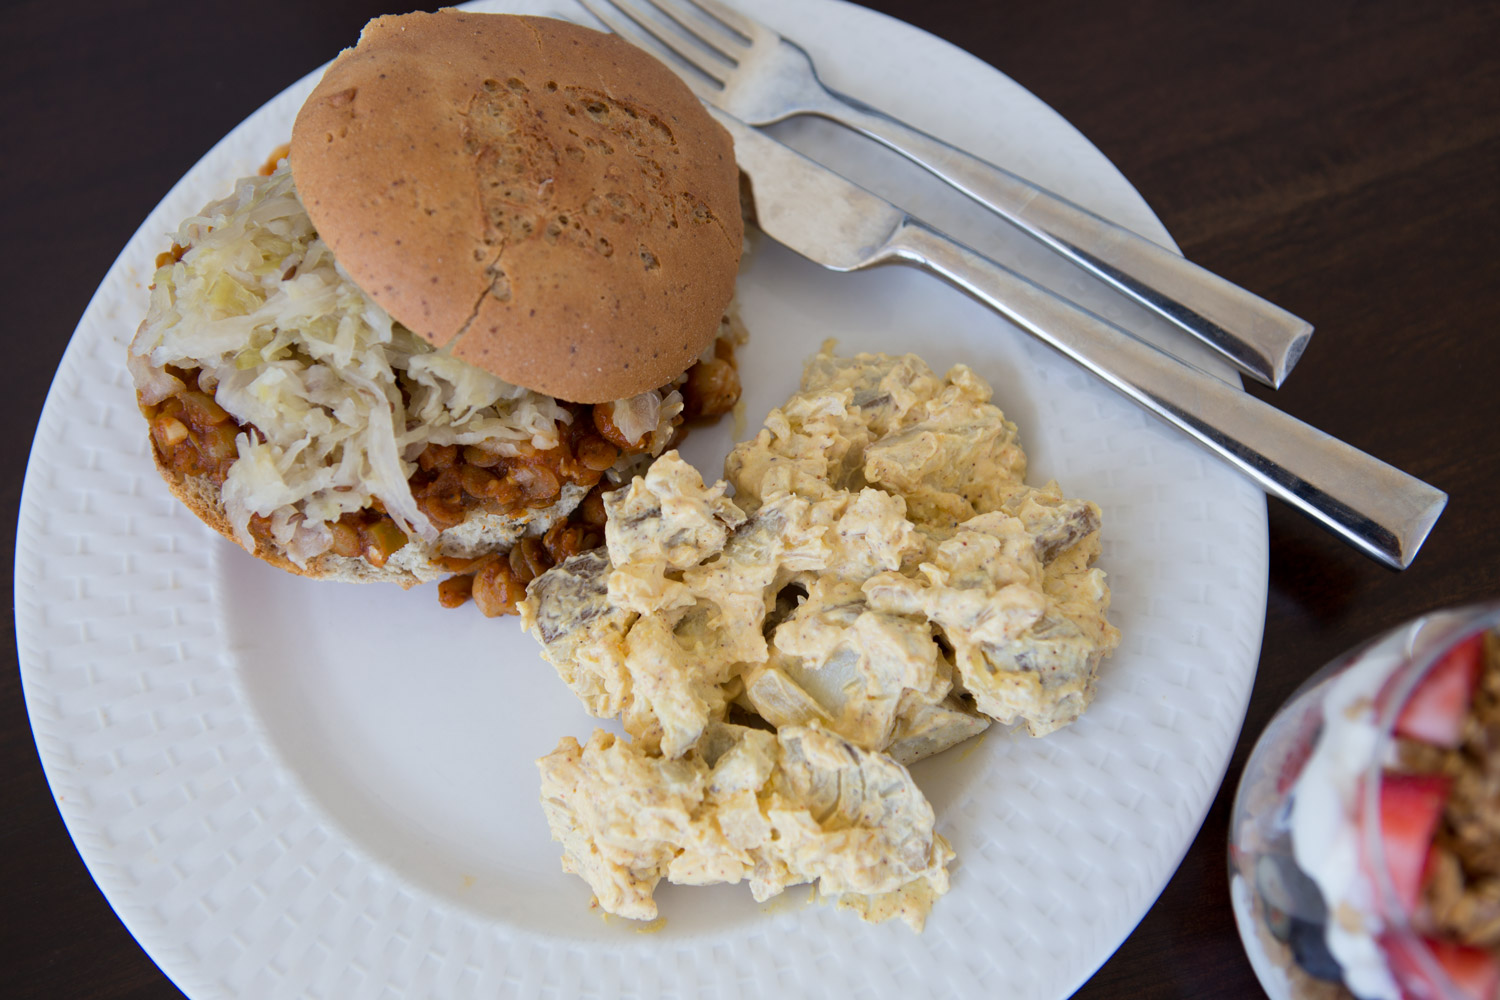 Healthy sloppy joes and potato salad